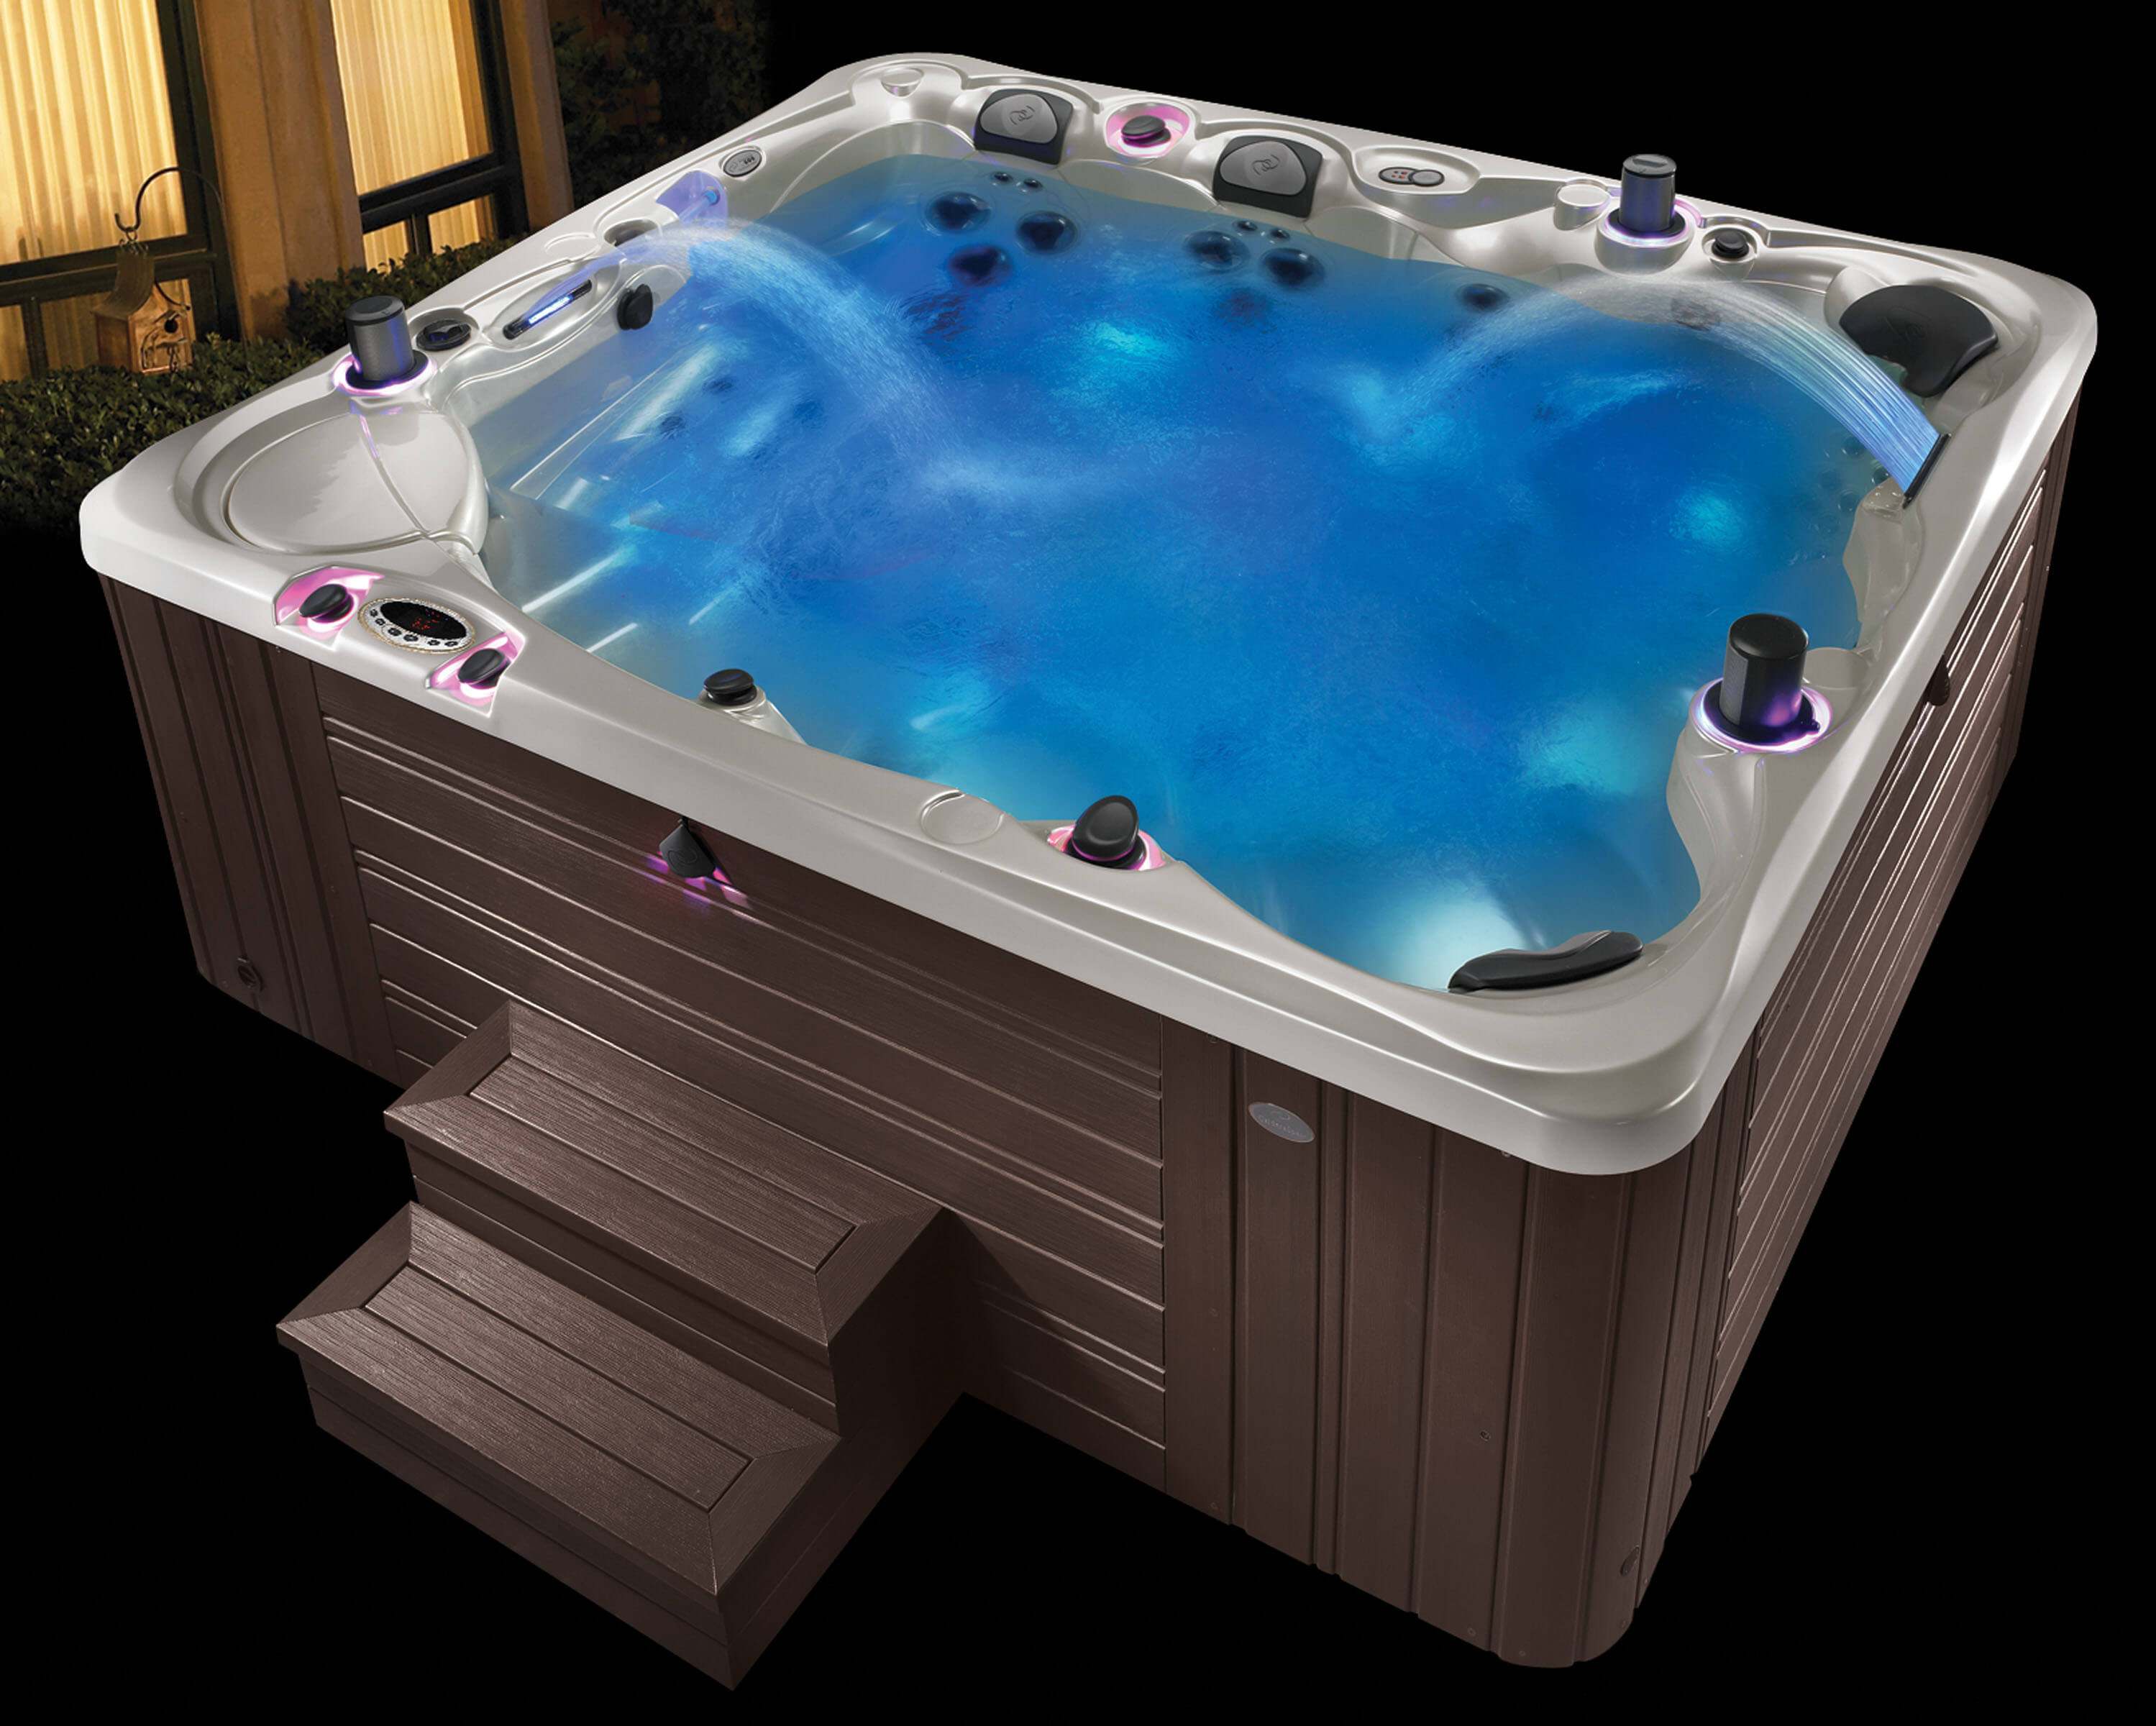 merrimack nh hot tub sales service and repair. Black Bedroom Furniture Sets. Home Design Ideas